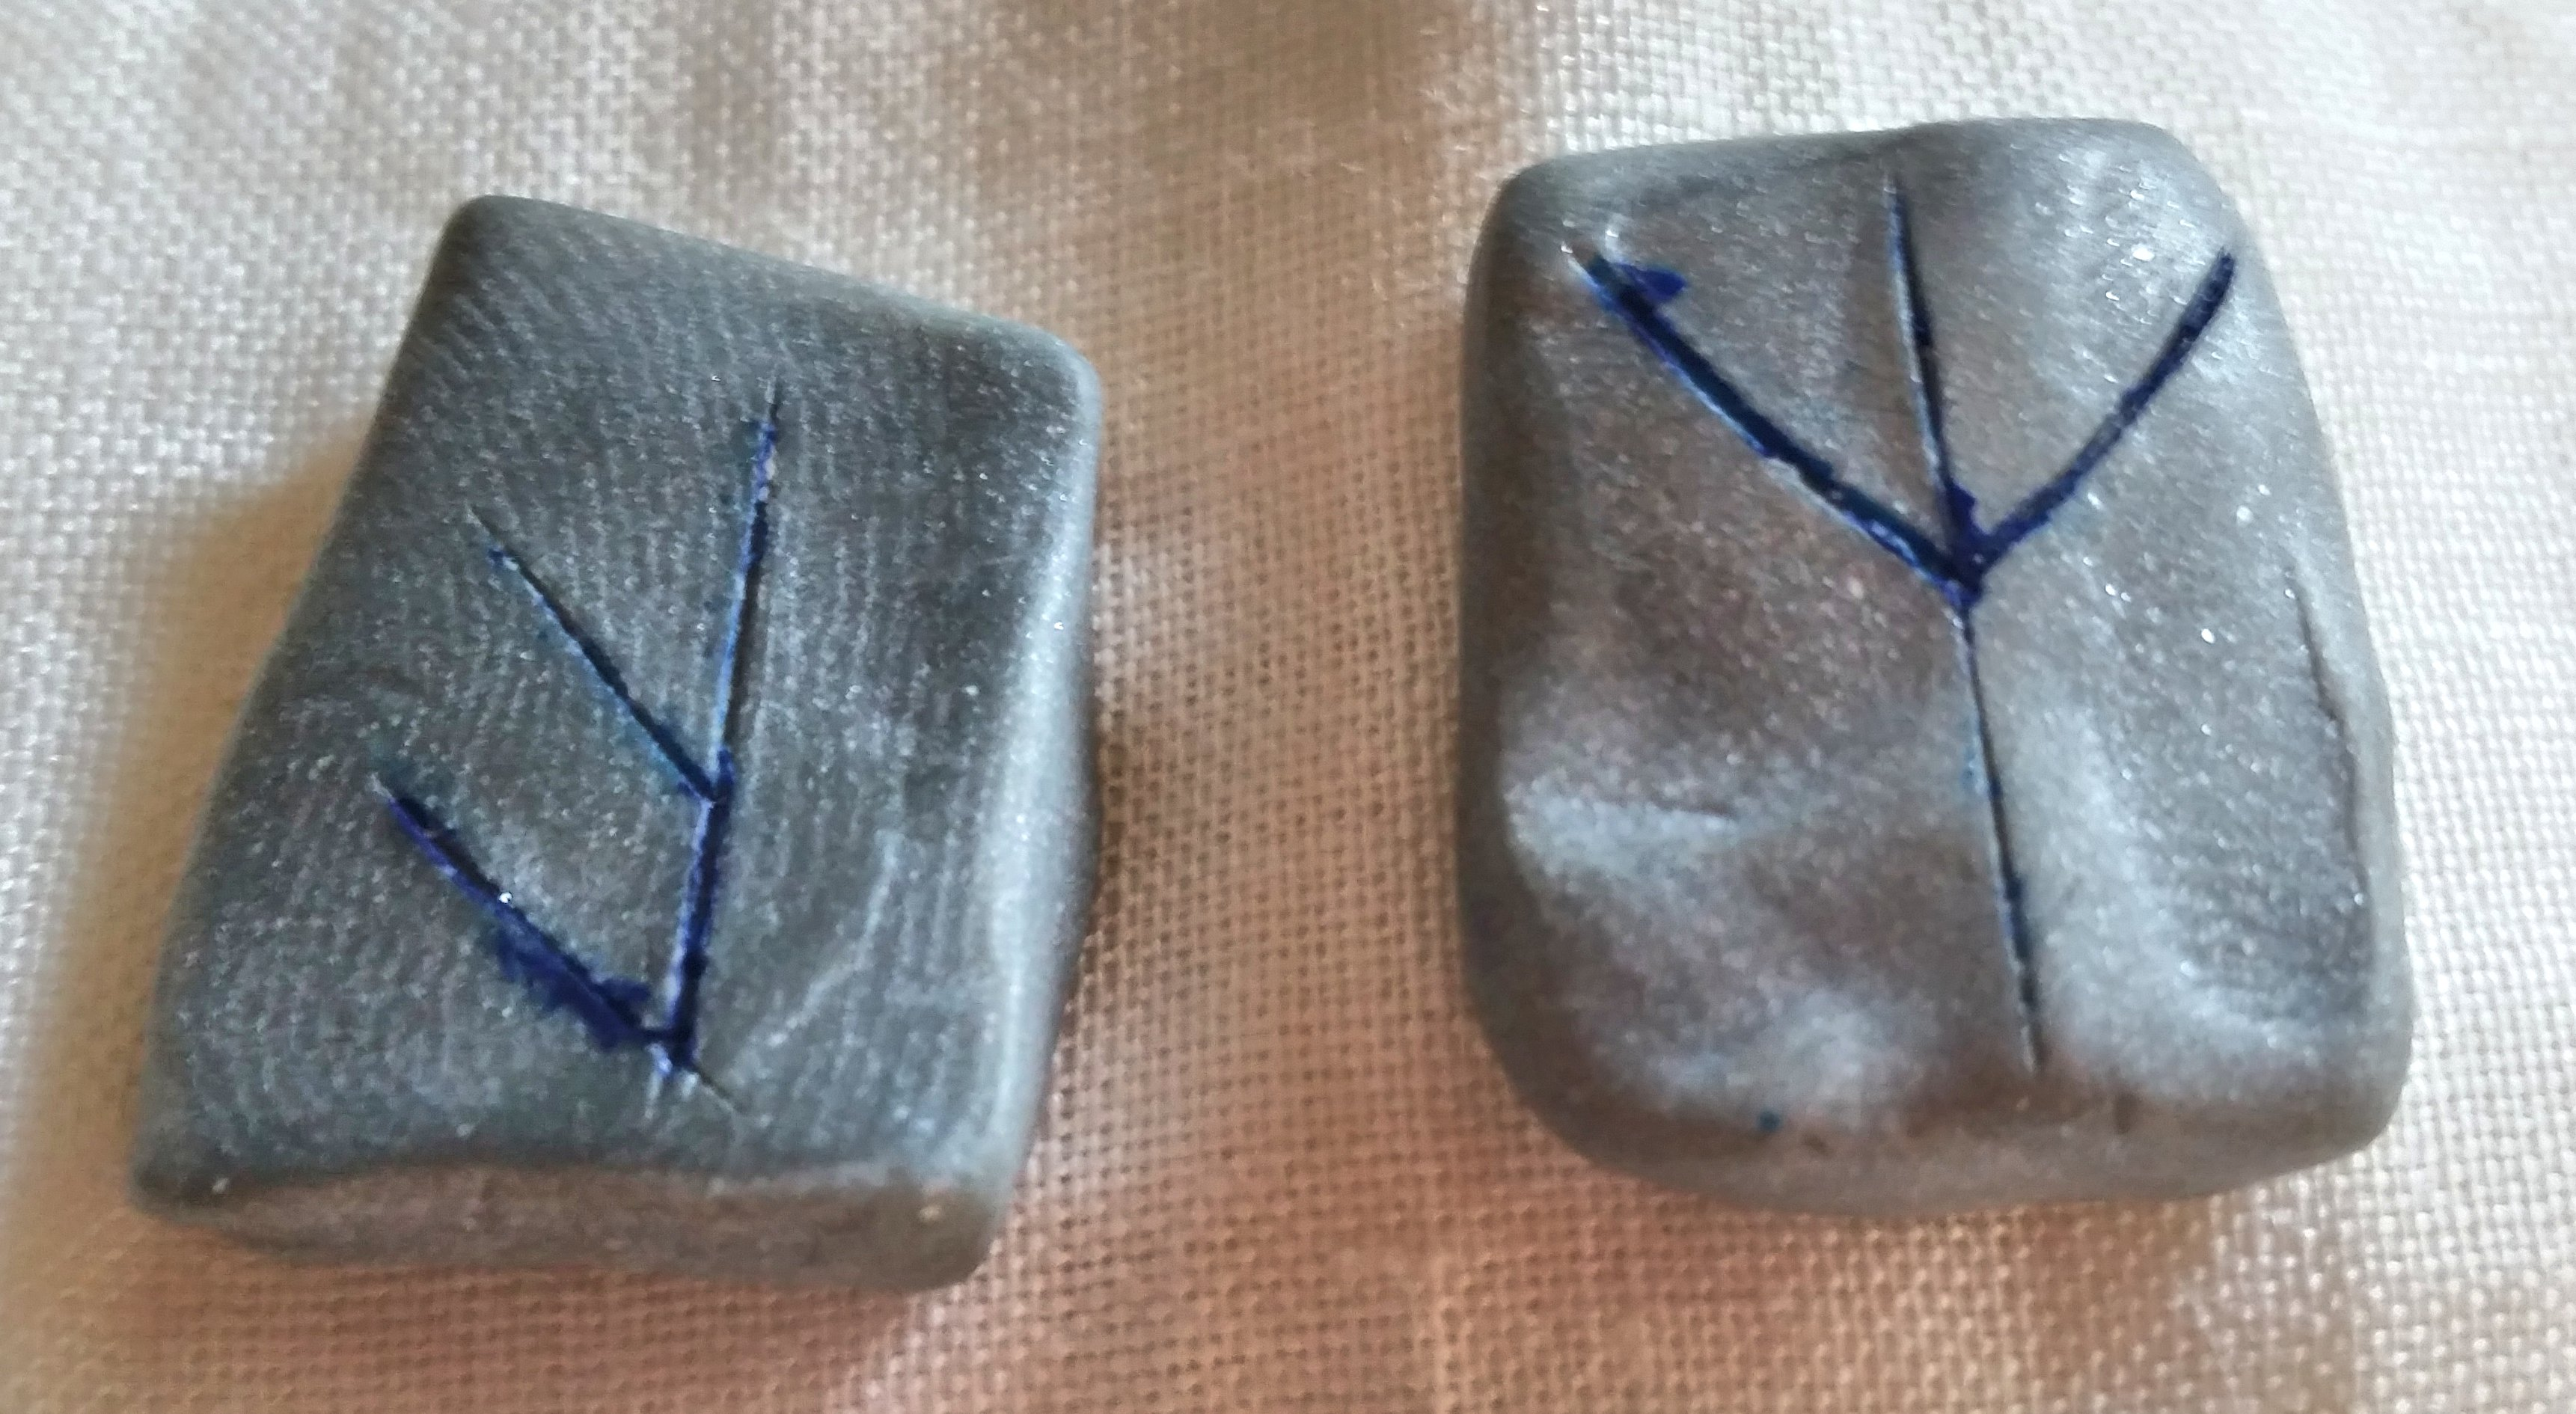 The Weekly Rune, by S. Kelley Harrell